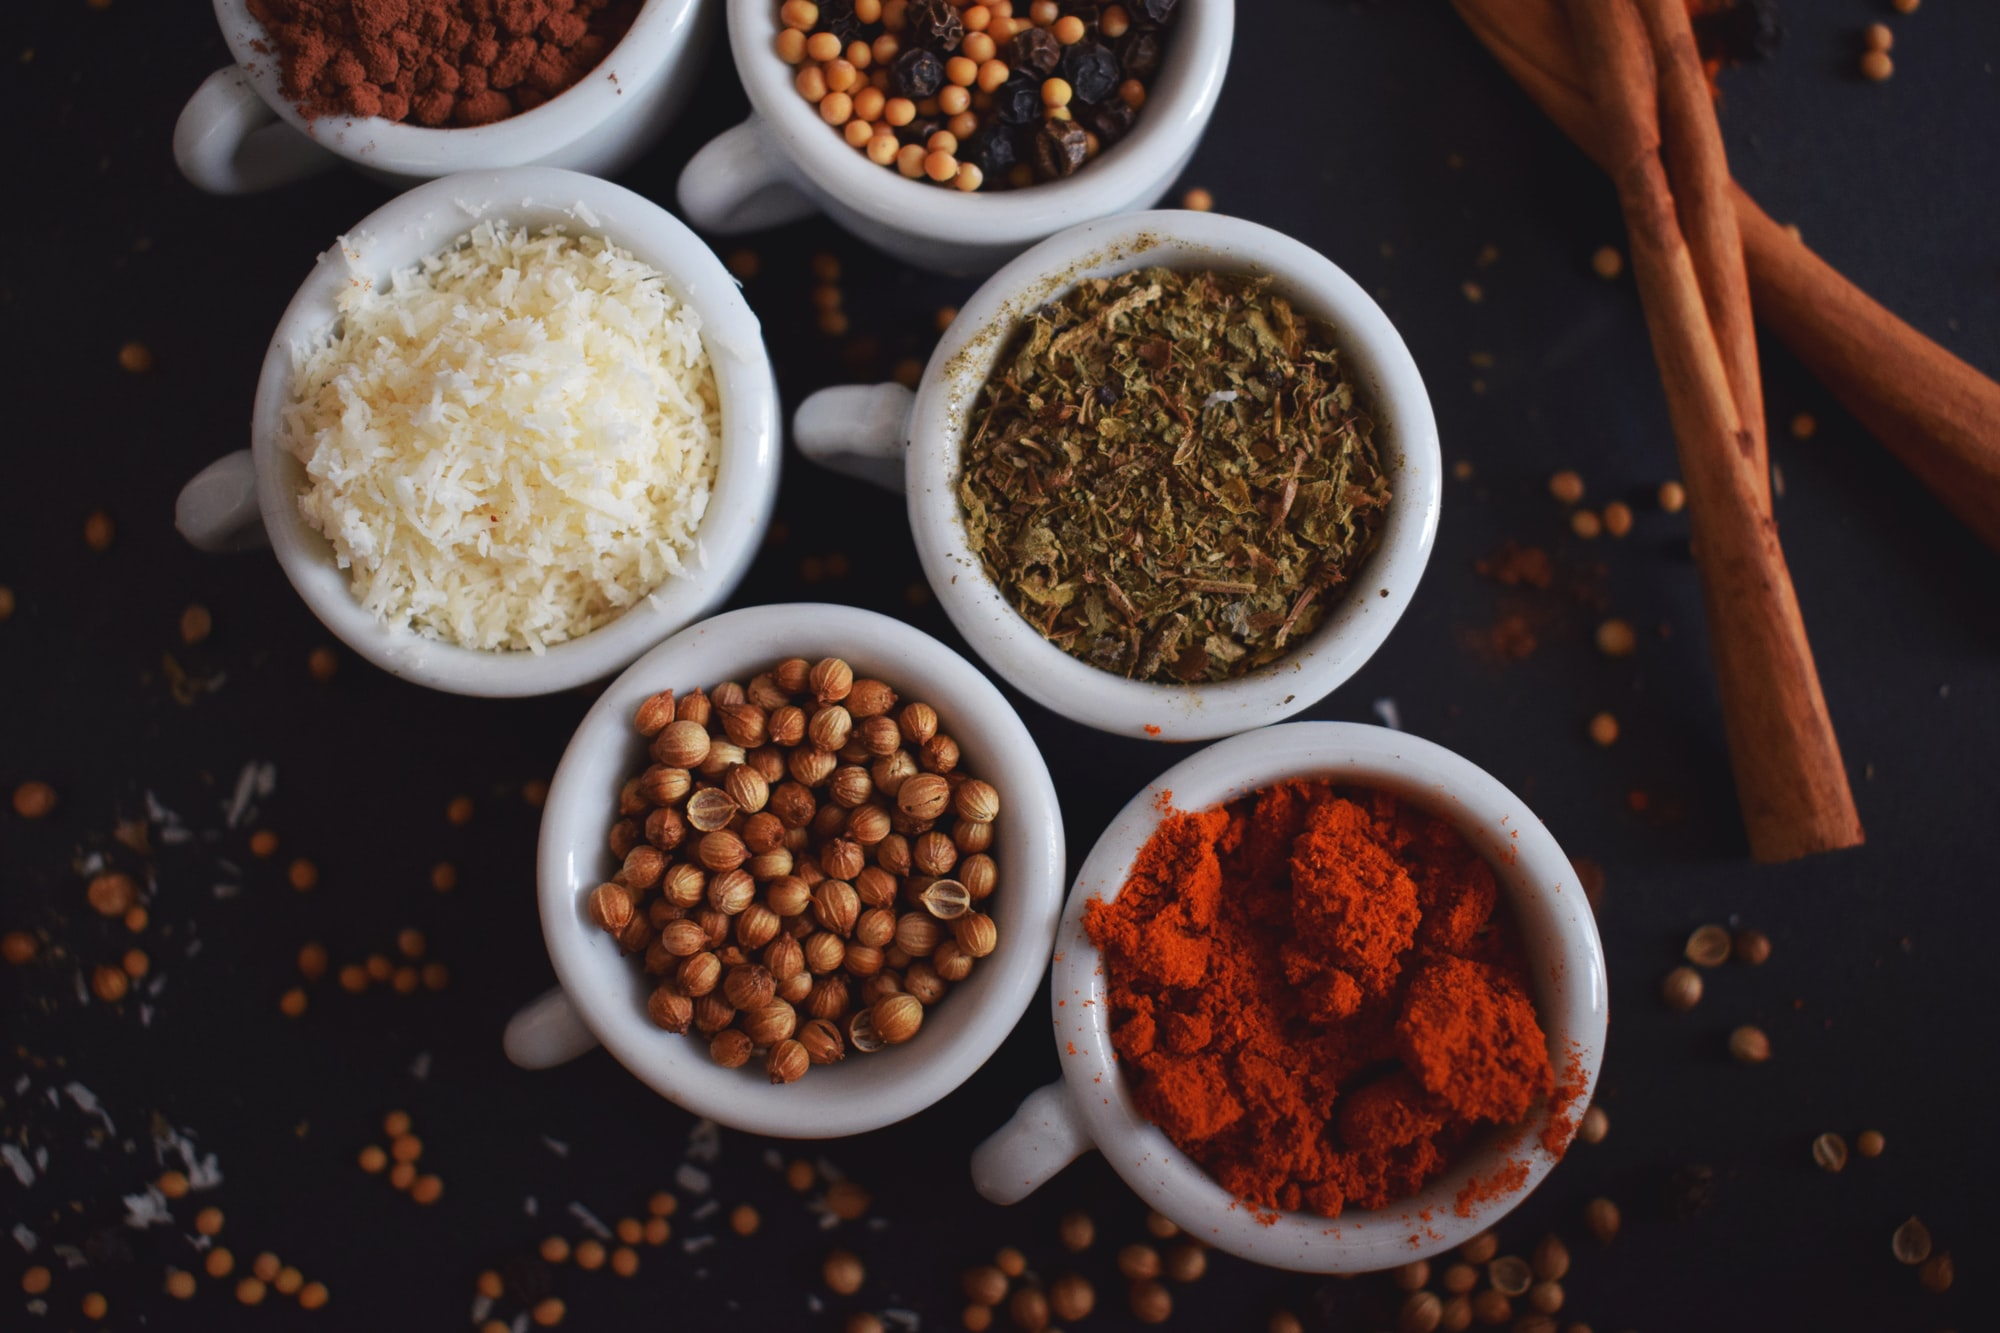 Baby Spice(s): 5 Tips for Using Spices and Herbs in Your Baby's Food